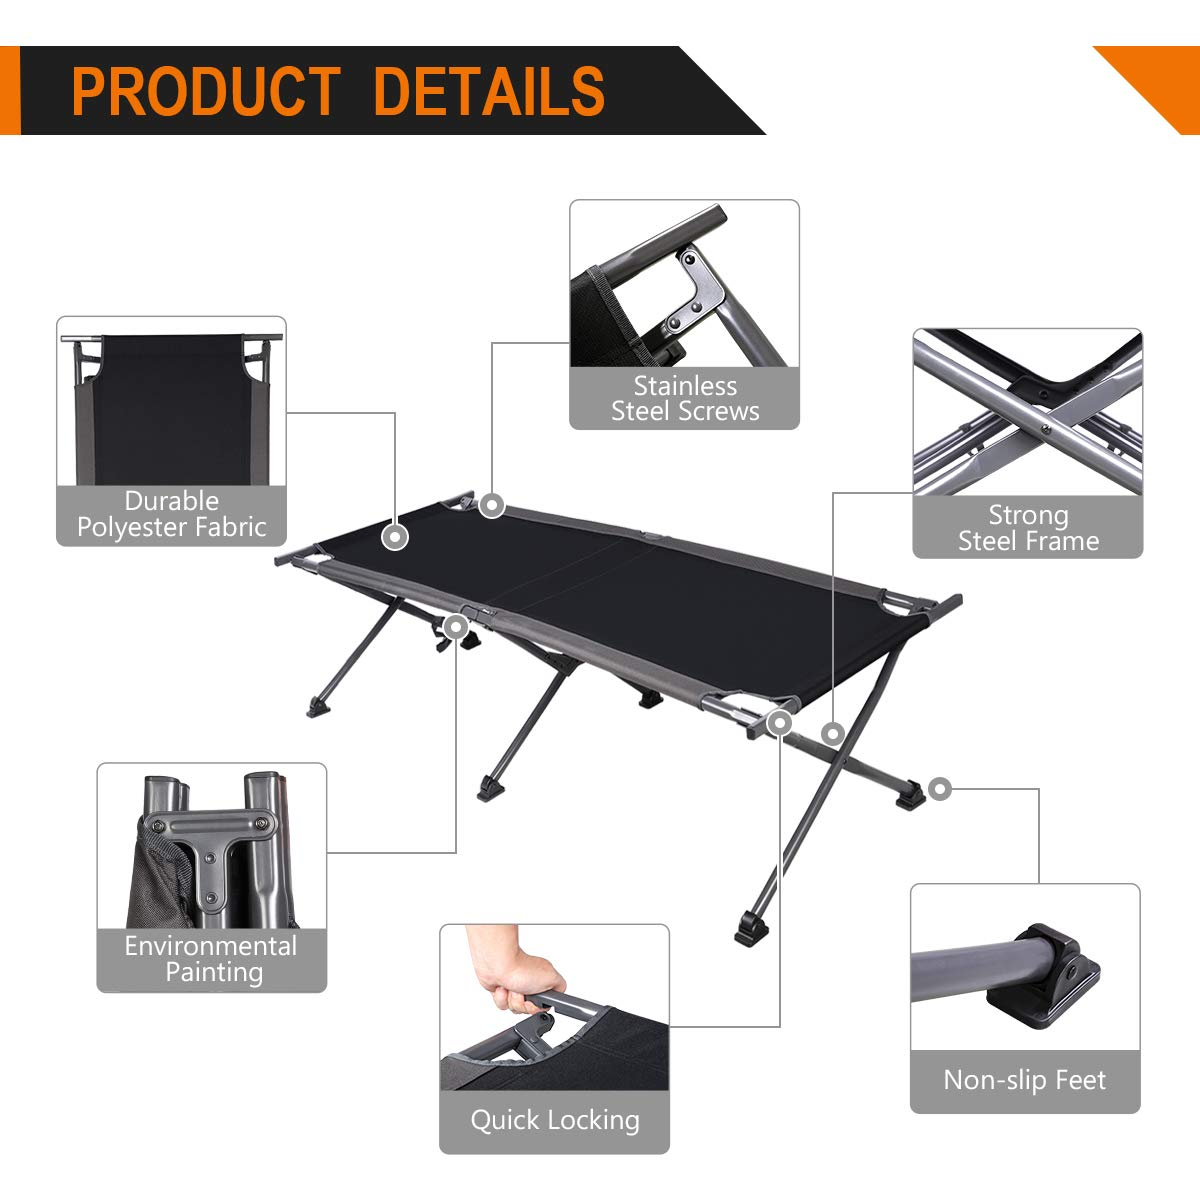 Compact Collapsible Heavy Duty Adult Sleeping Cot Bed with Storage Bag PORTAL Folding Camping Cot Great for Travel Tent Support 300lbs Hengfeng